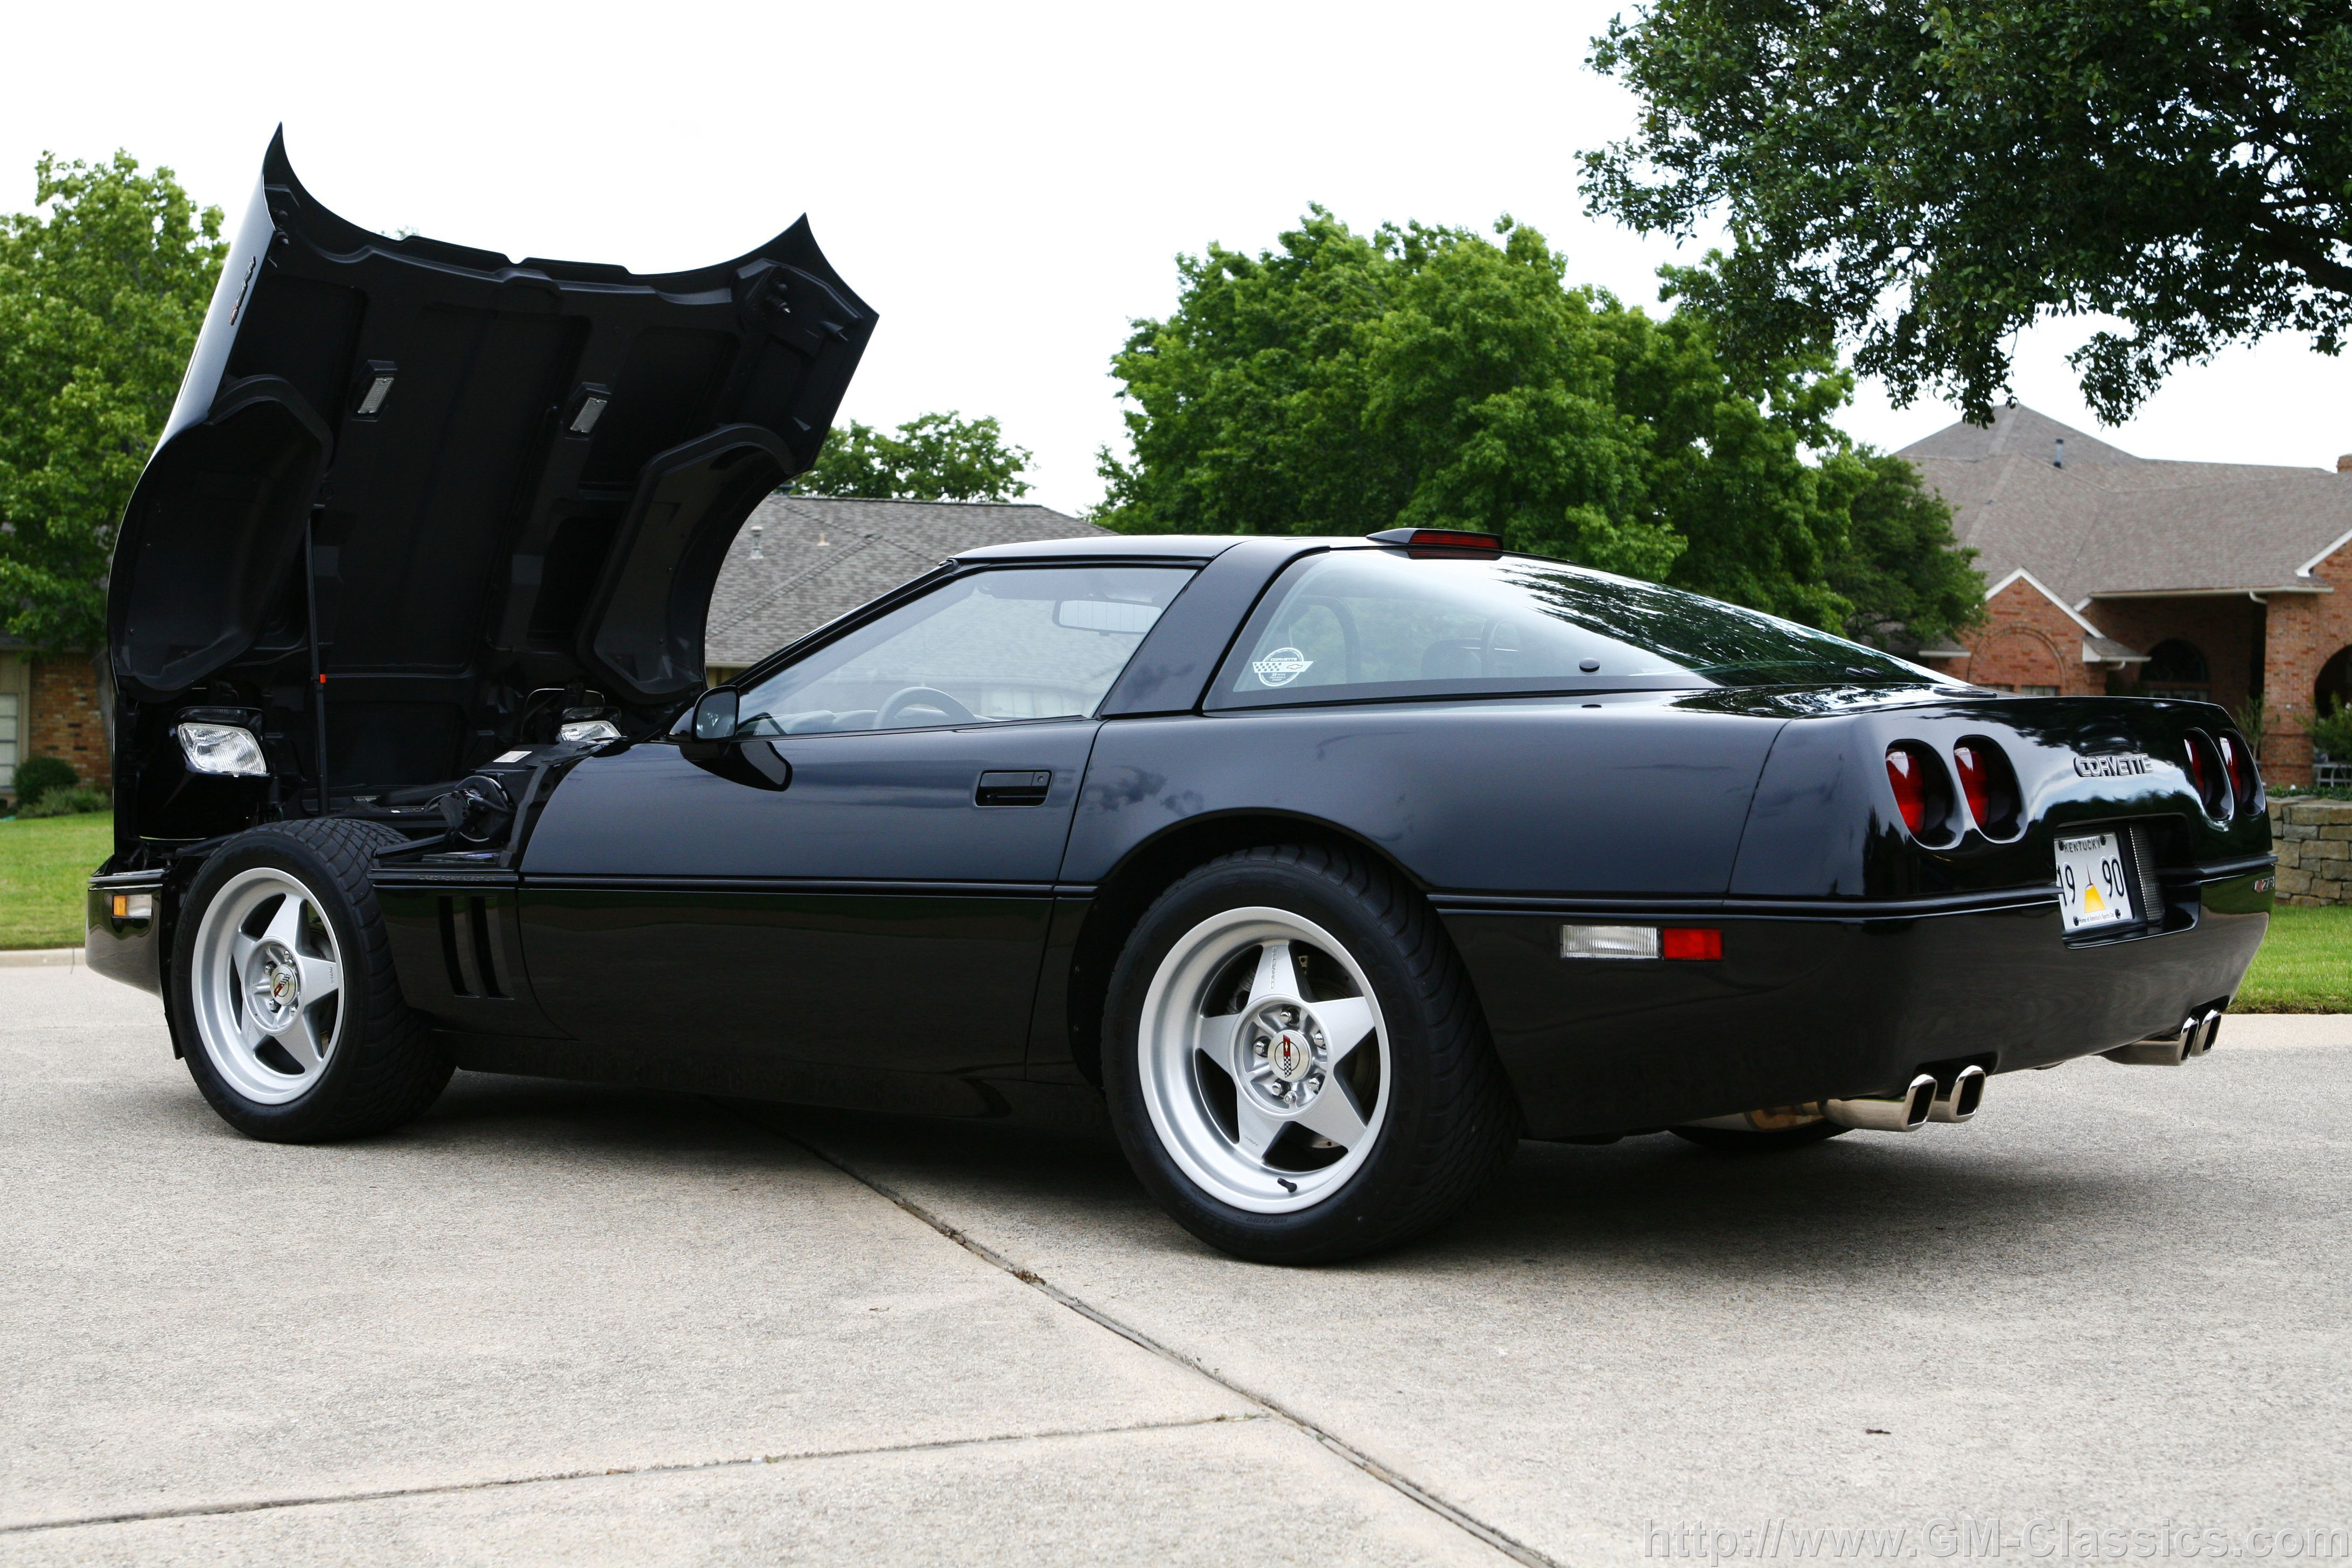 1991 Corvette Zr1 Black Google Search Corvette Chevrolet